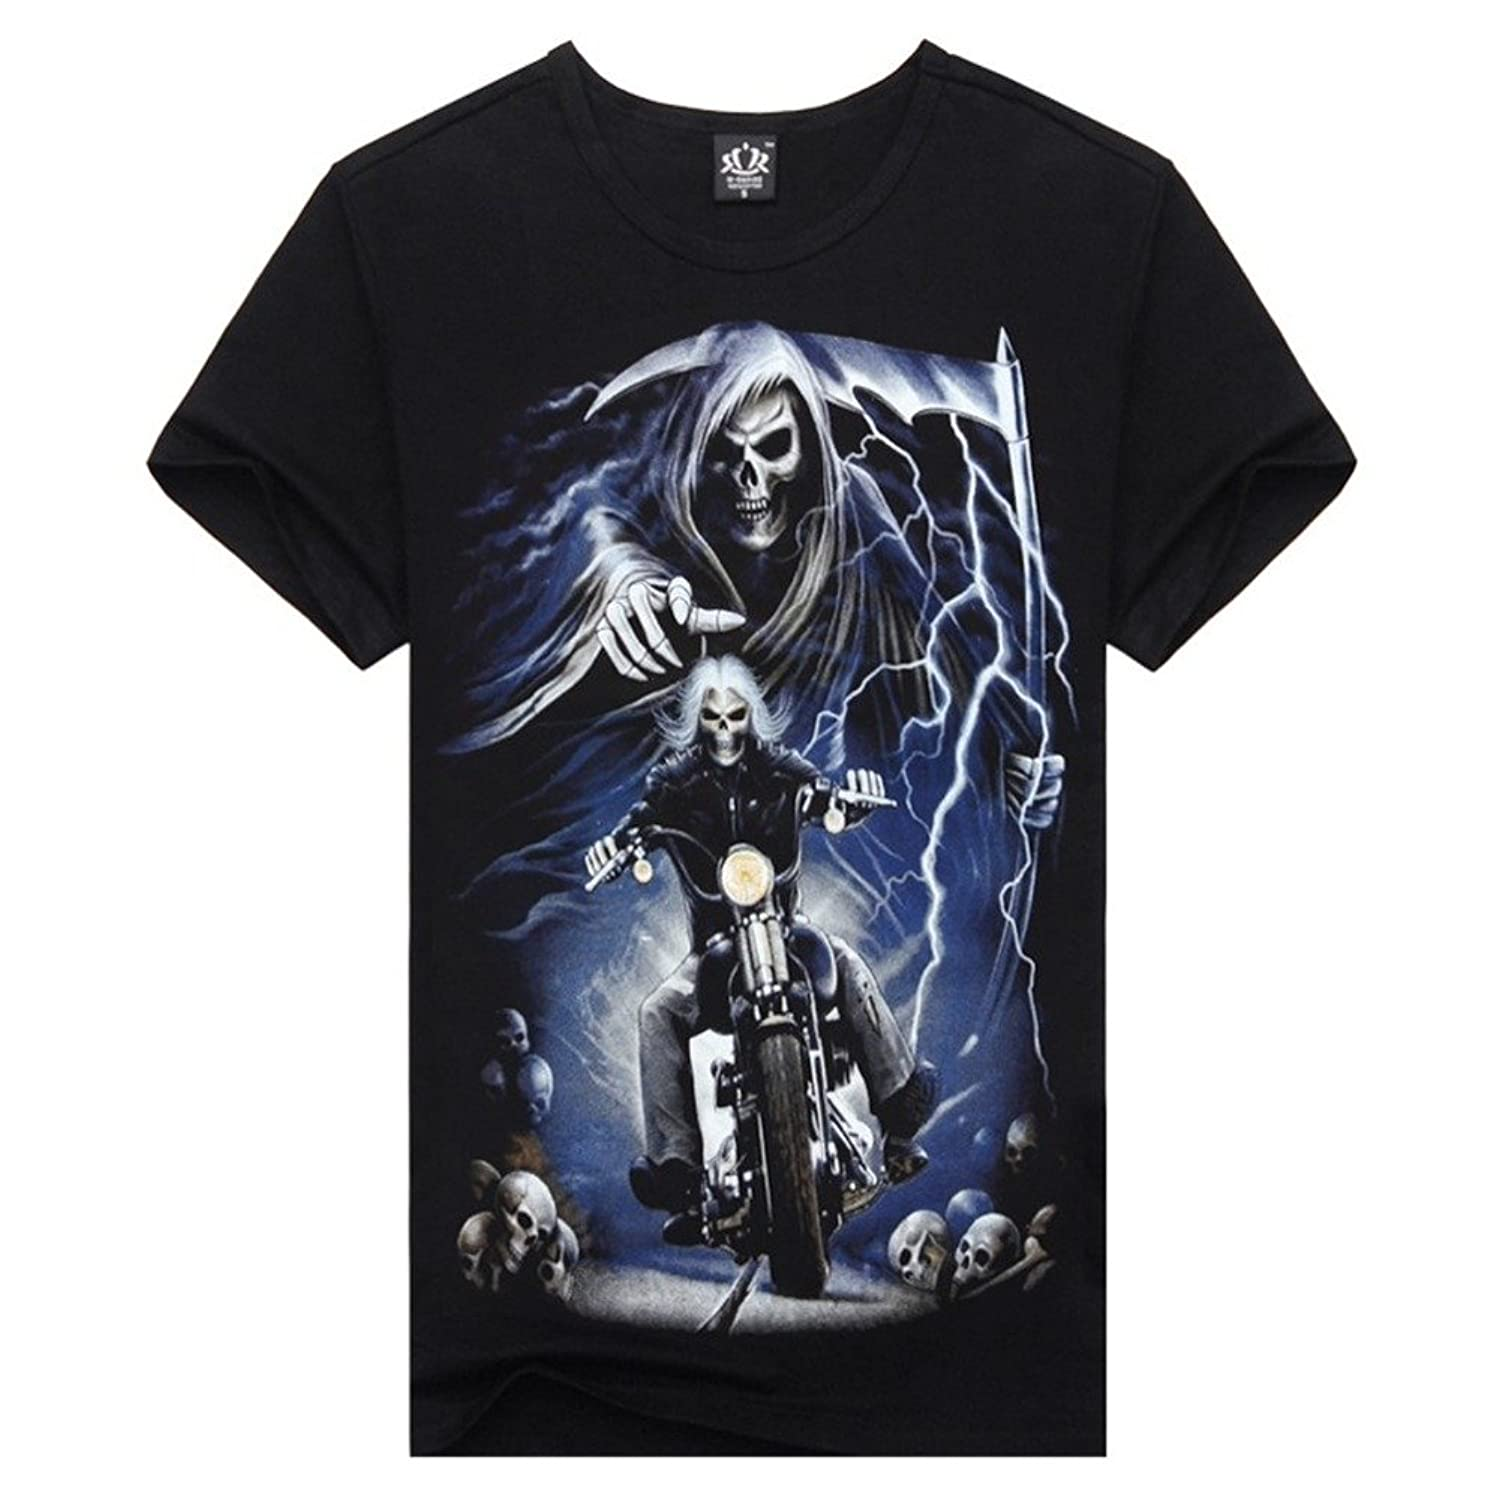 M-Empire Ghost Rider Skeleton T Shirt For Guys Cool New Style Casual Tee